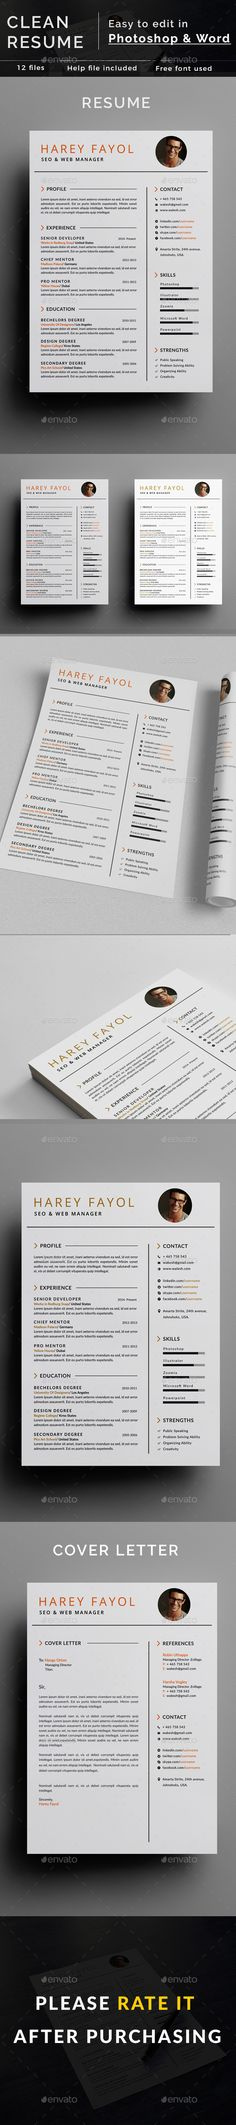 Clean #Resume - Resumes #Stationery Download here: https://graphicriver.net/item/clean-resume/19492426?ref=alena994